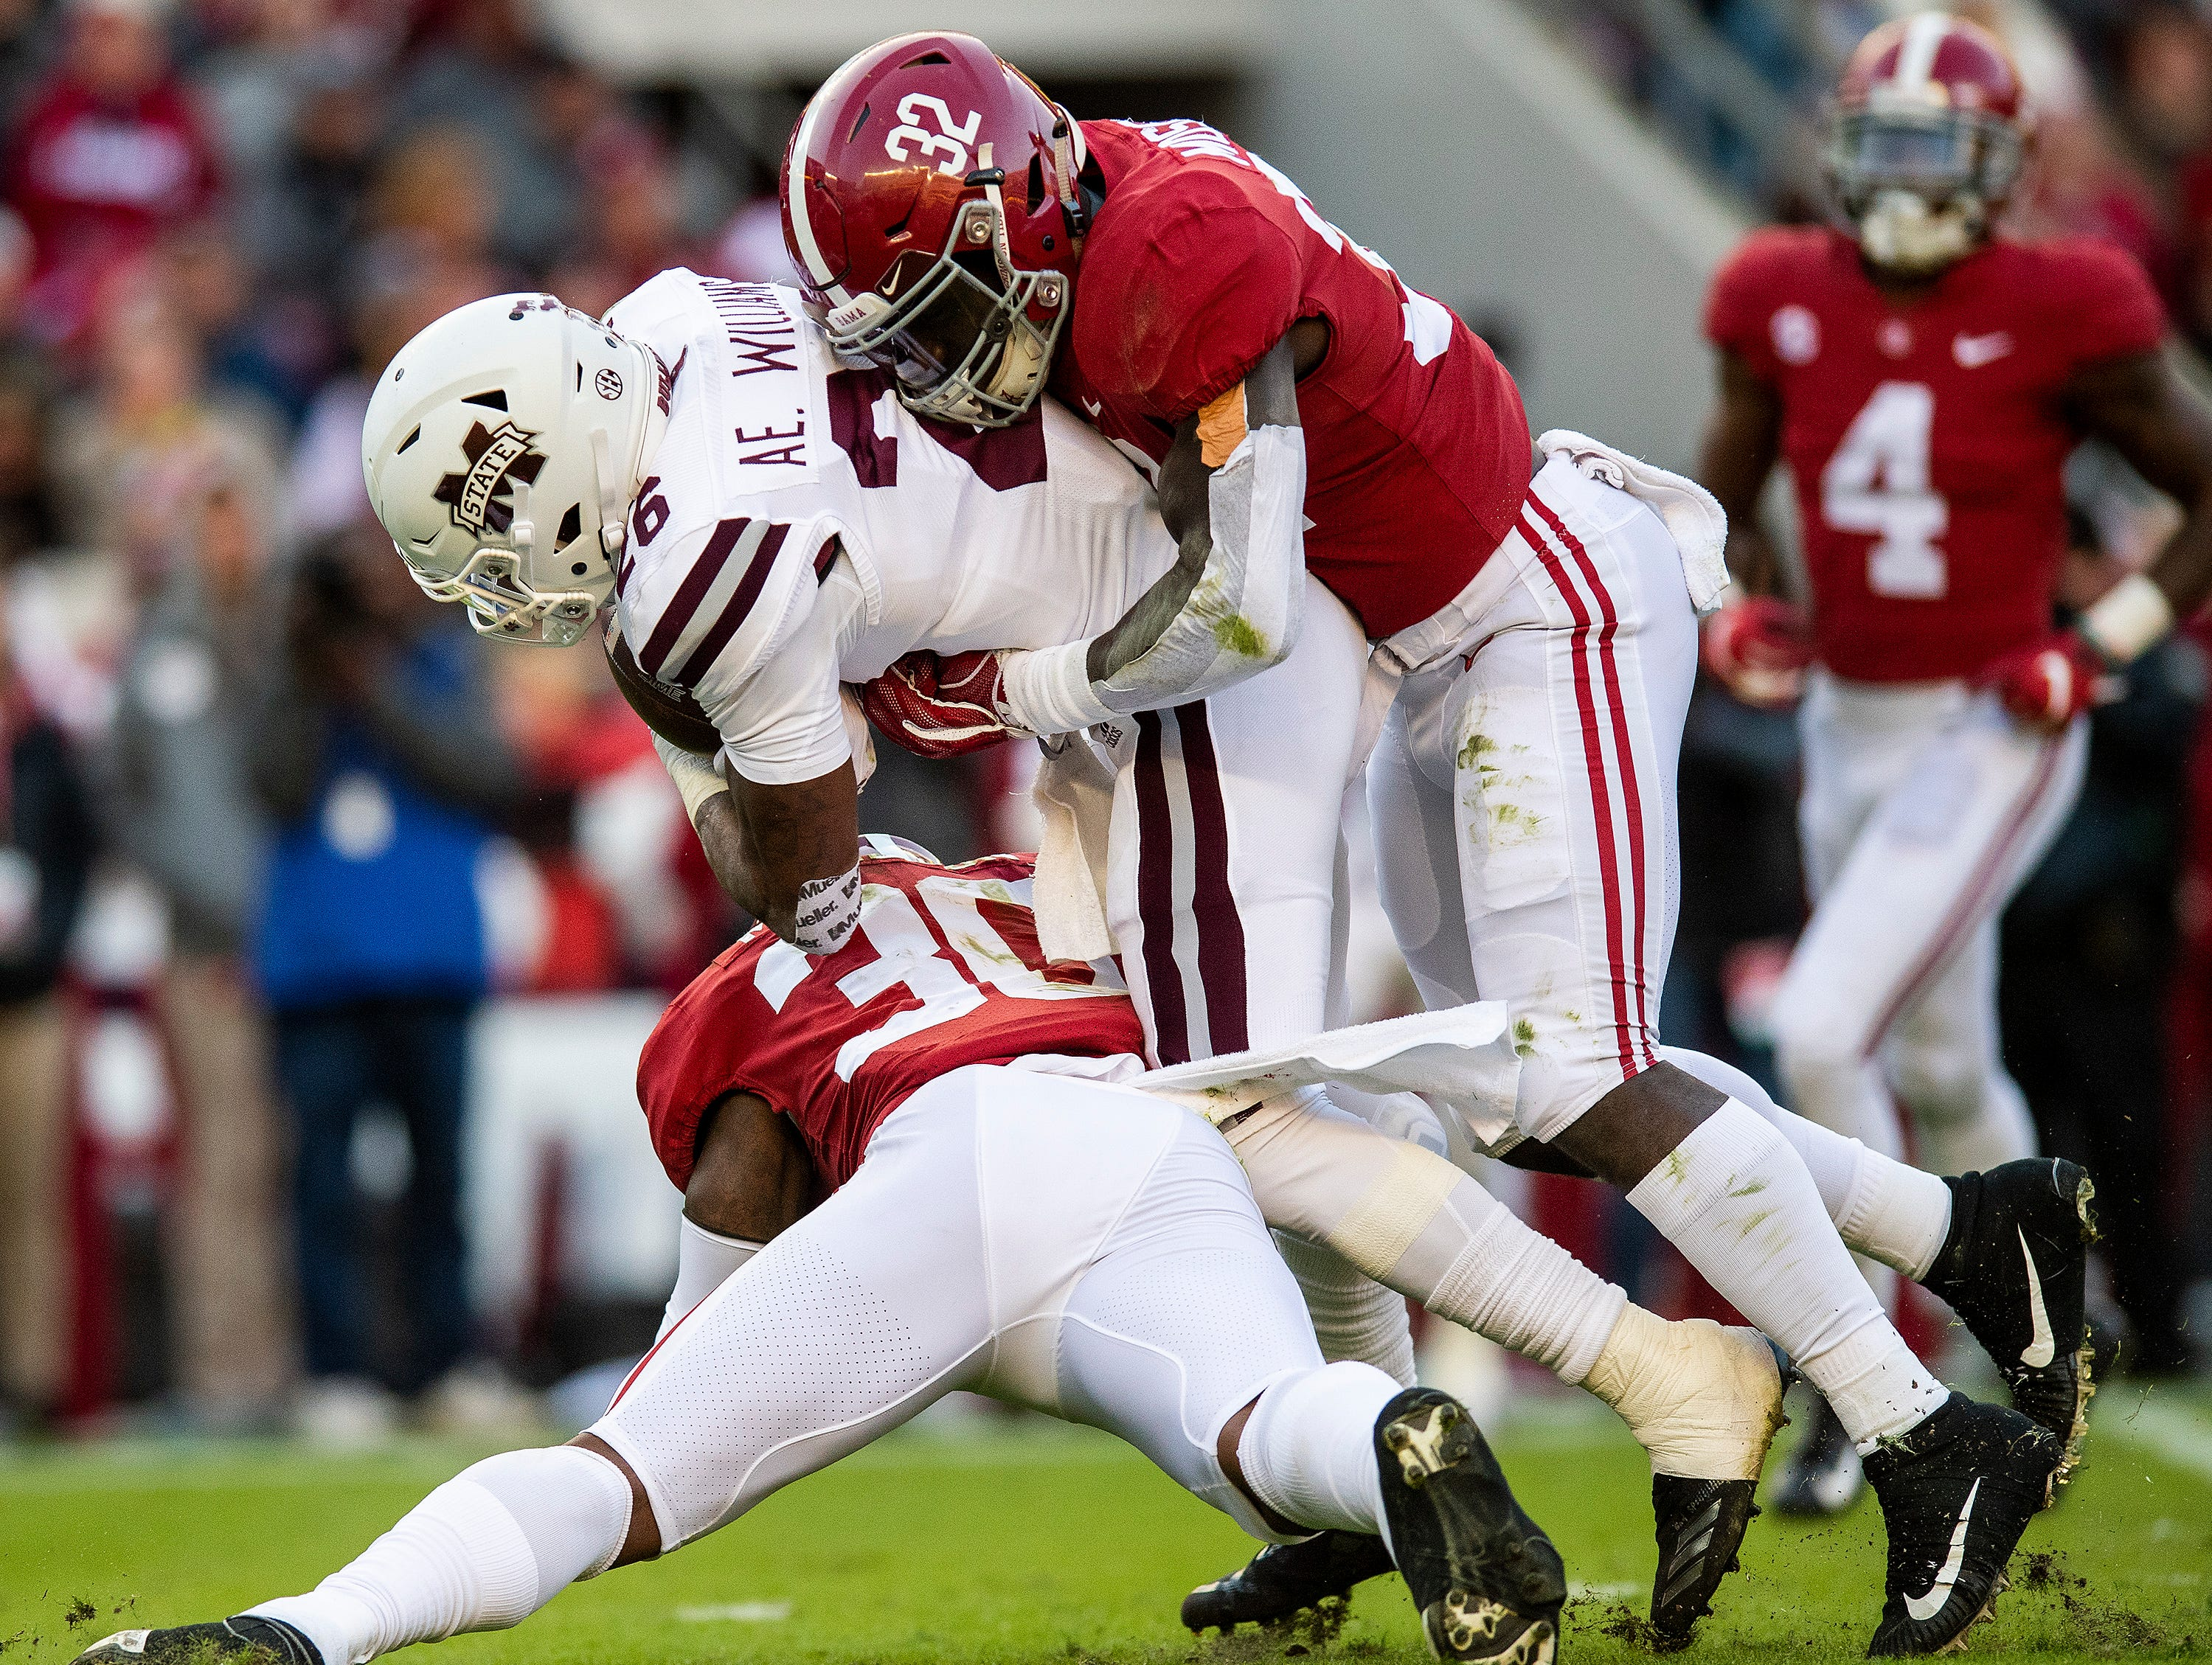 Alabama linebackers Mack Wilson (30) and Dylan Moses (32) tackle Mississippi State running back Aeris Williams (26) in first half action at Bryant Denny Stadium in Tuscaloosa, Ala., on Saturday November 9, 2018.